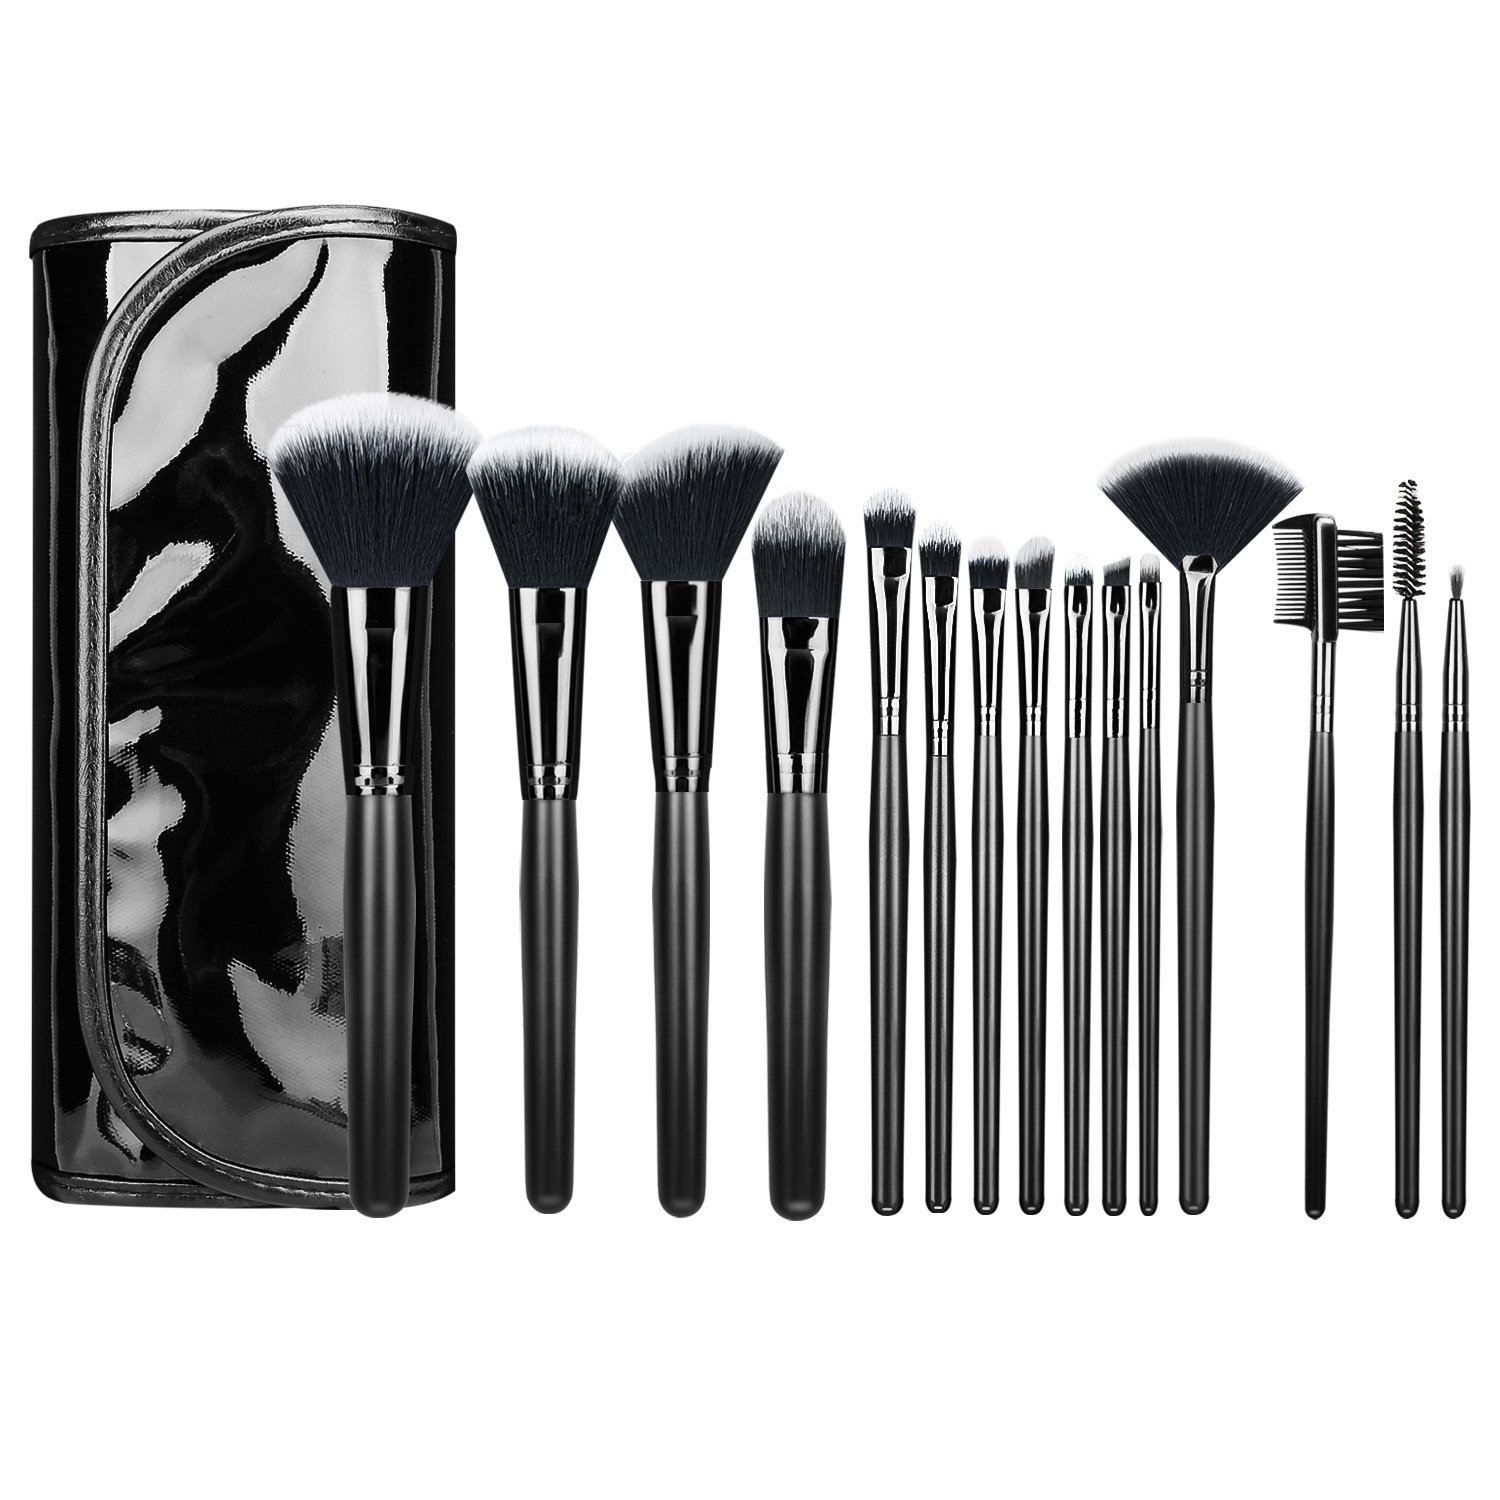 Luxspire 15PCS Professional Makeup Brush, Make up Brushes Set Powder Brush Eyelash Brush Eye Brow Brush Comestic Brush Set Makeup Tool with PU Leather Bag, Black